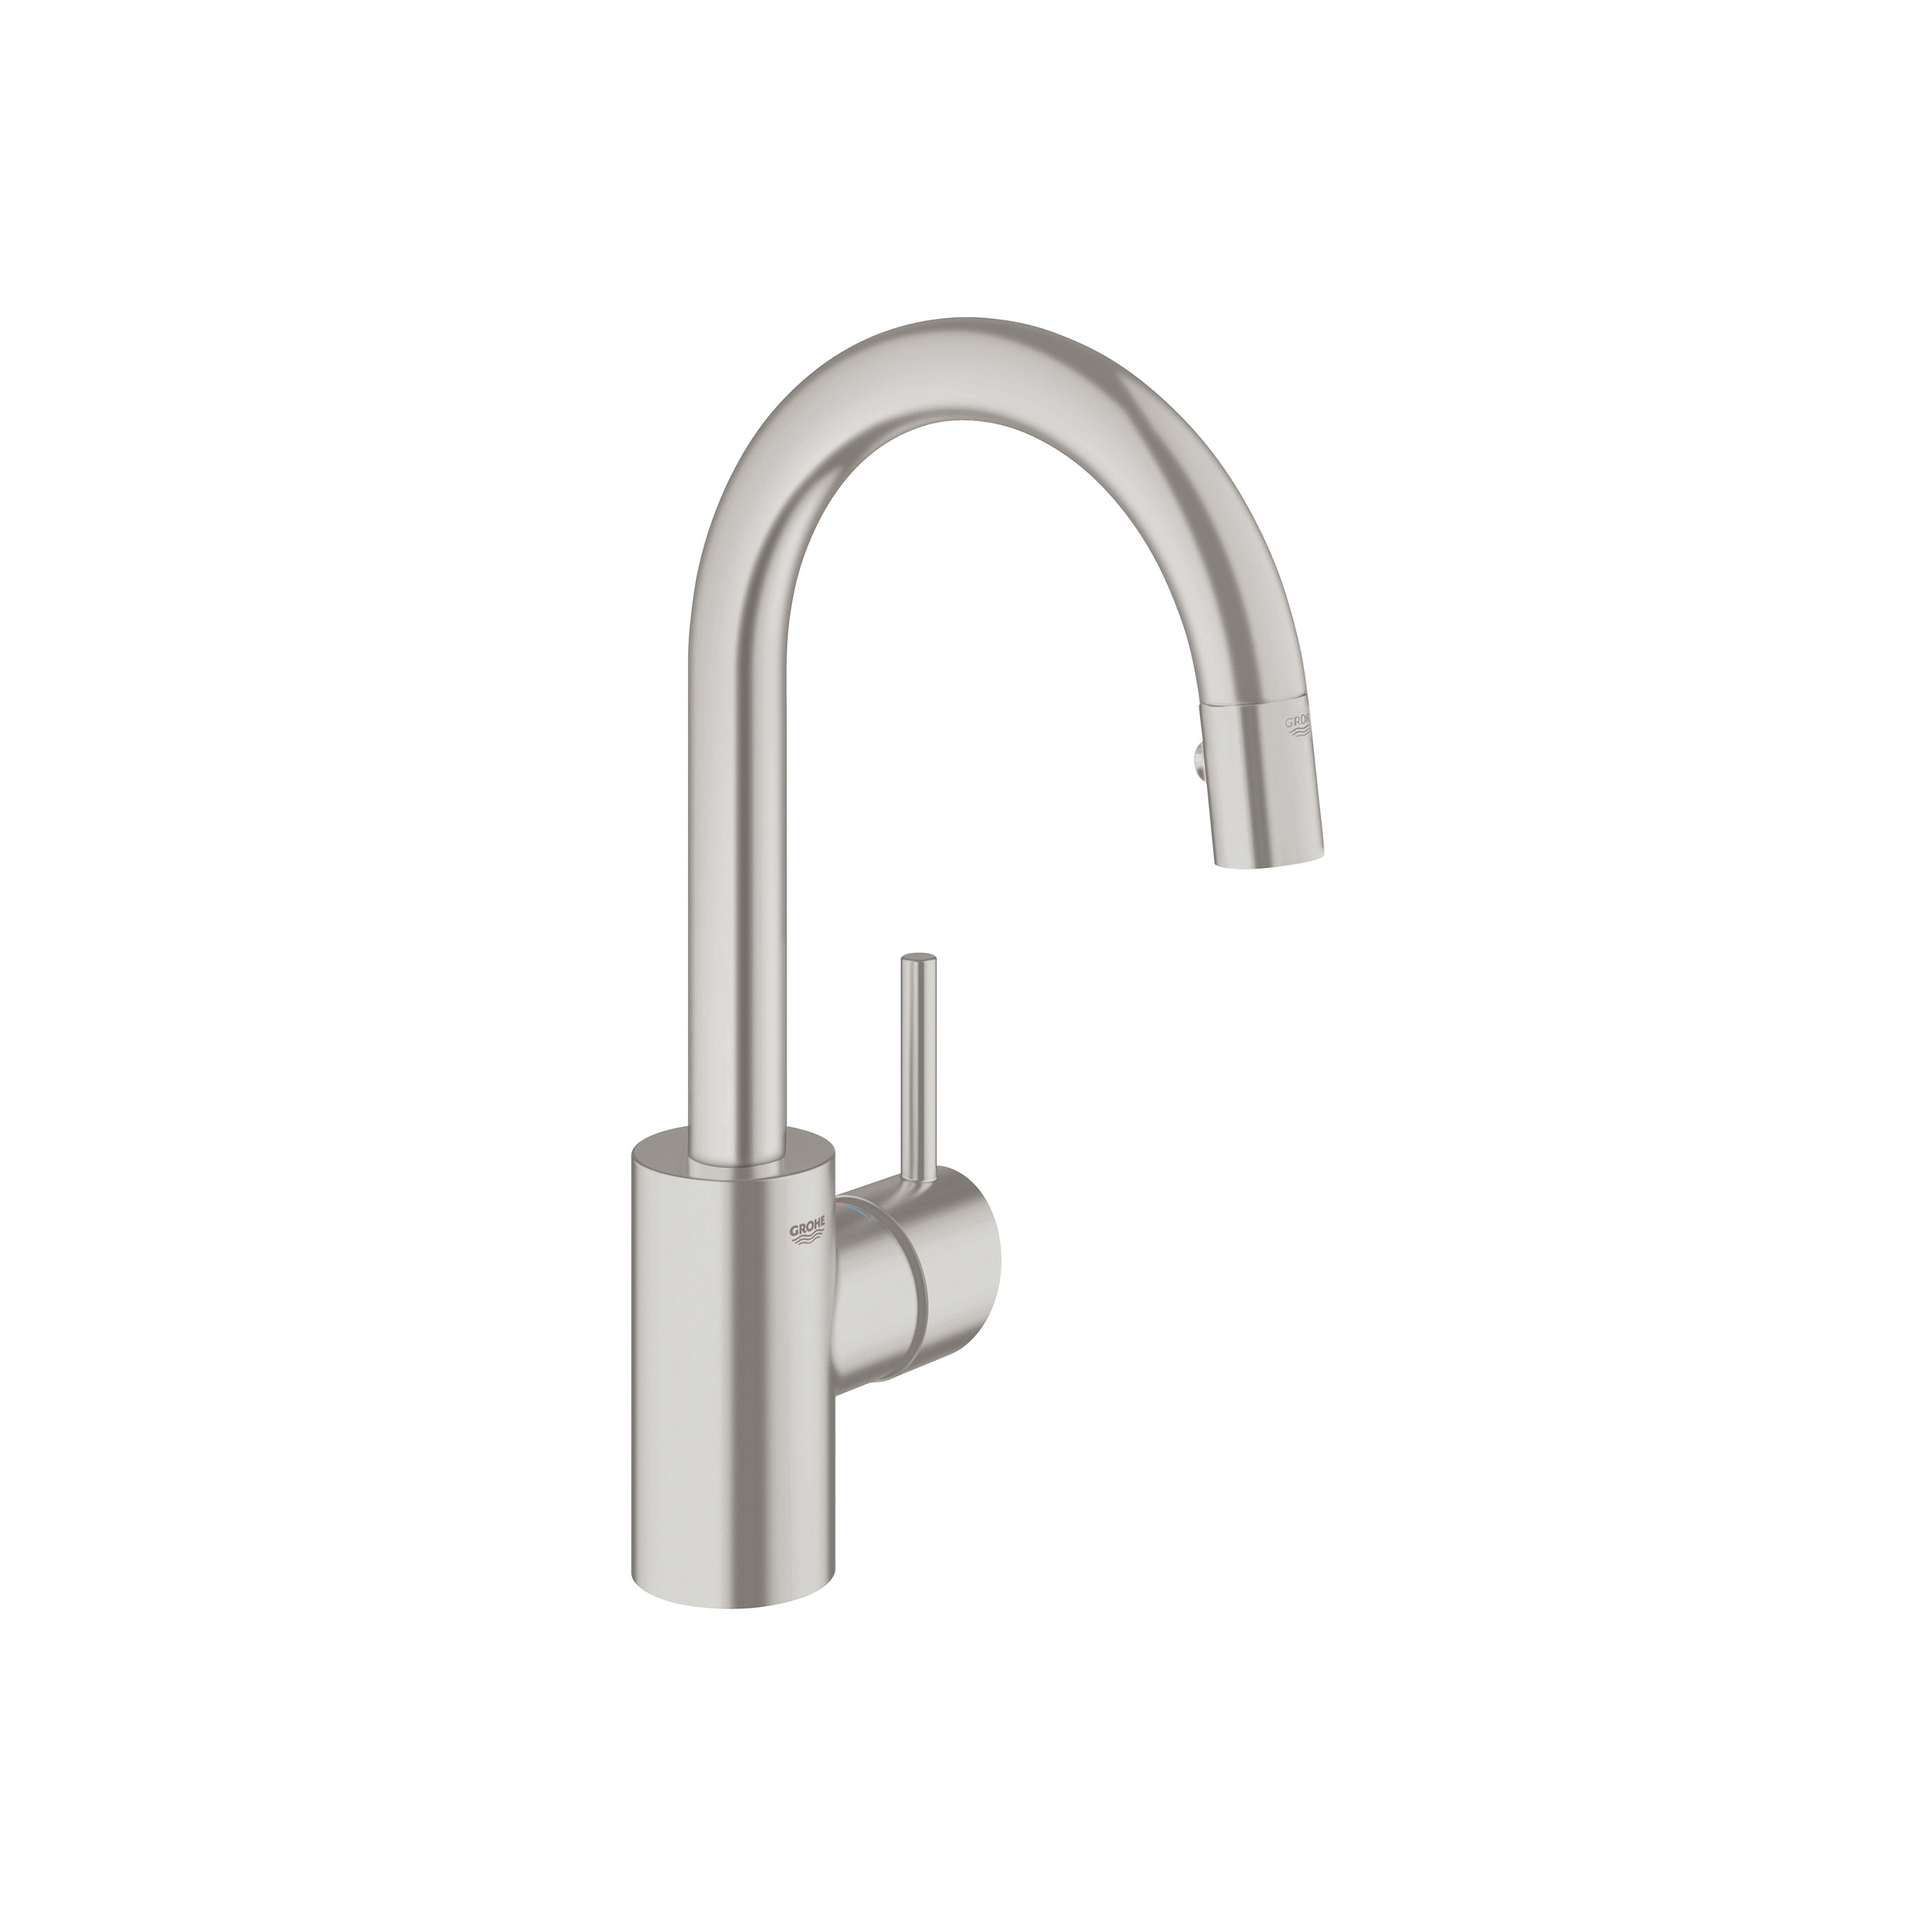 GROHE 31479000 Concetto Kitchen Faucet With Dual Spray, 1.75 gpm, 1 Faucet Hole, StarLight® Chrome, 1 Handle, Import, Residential